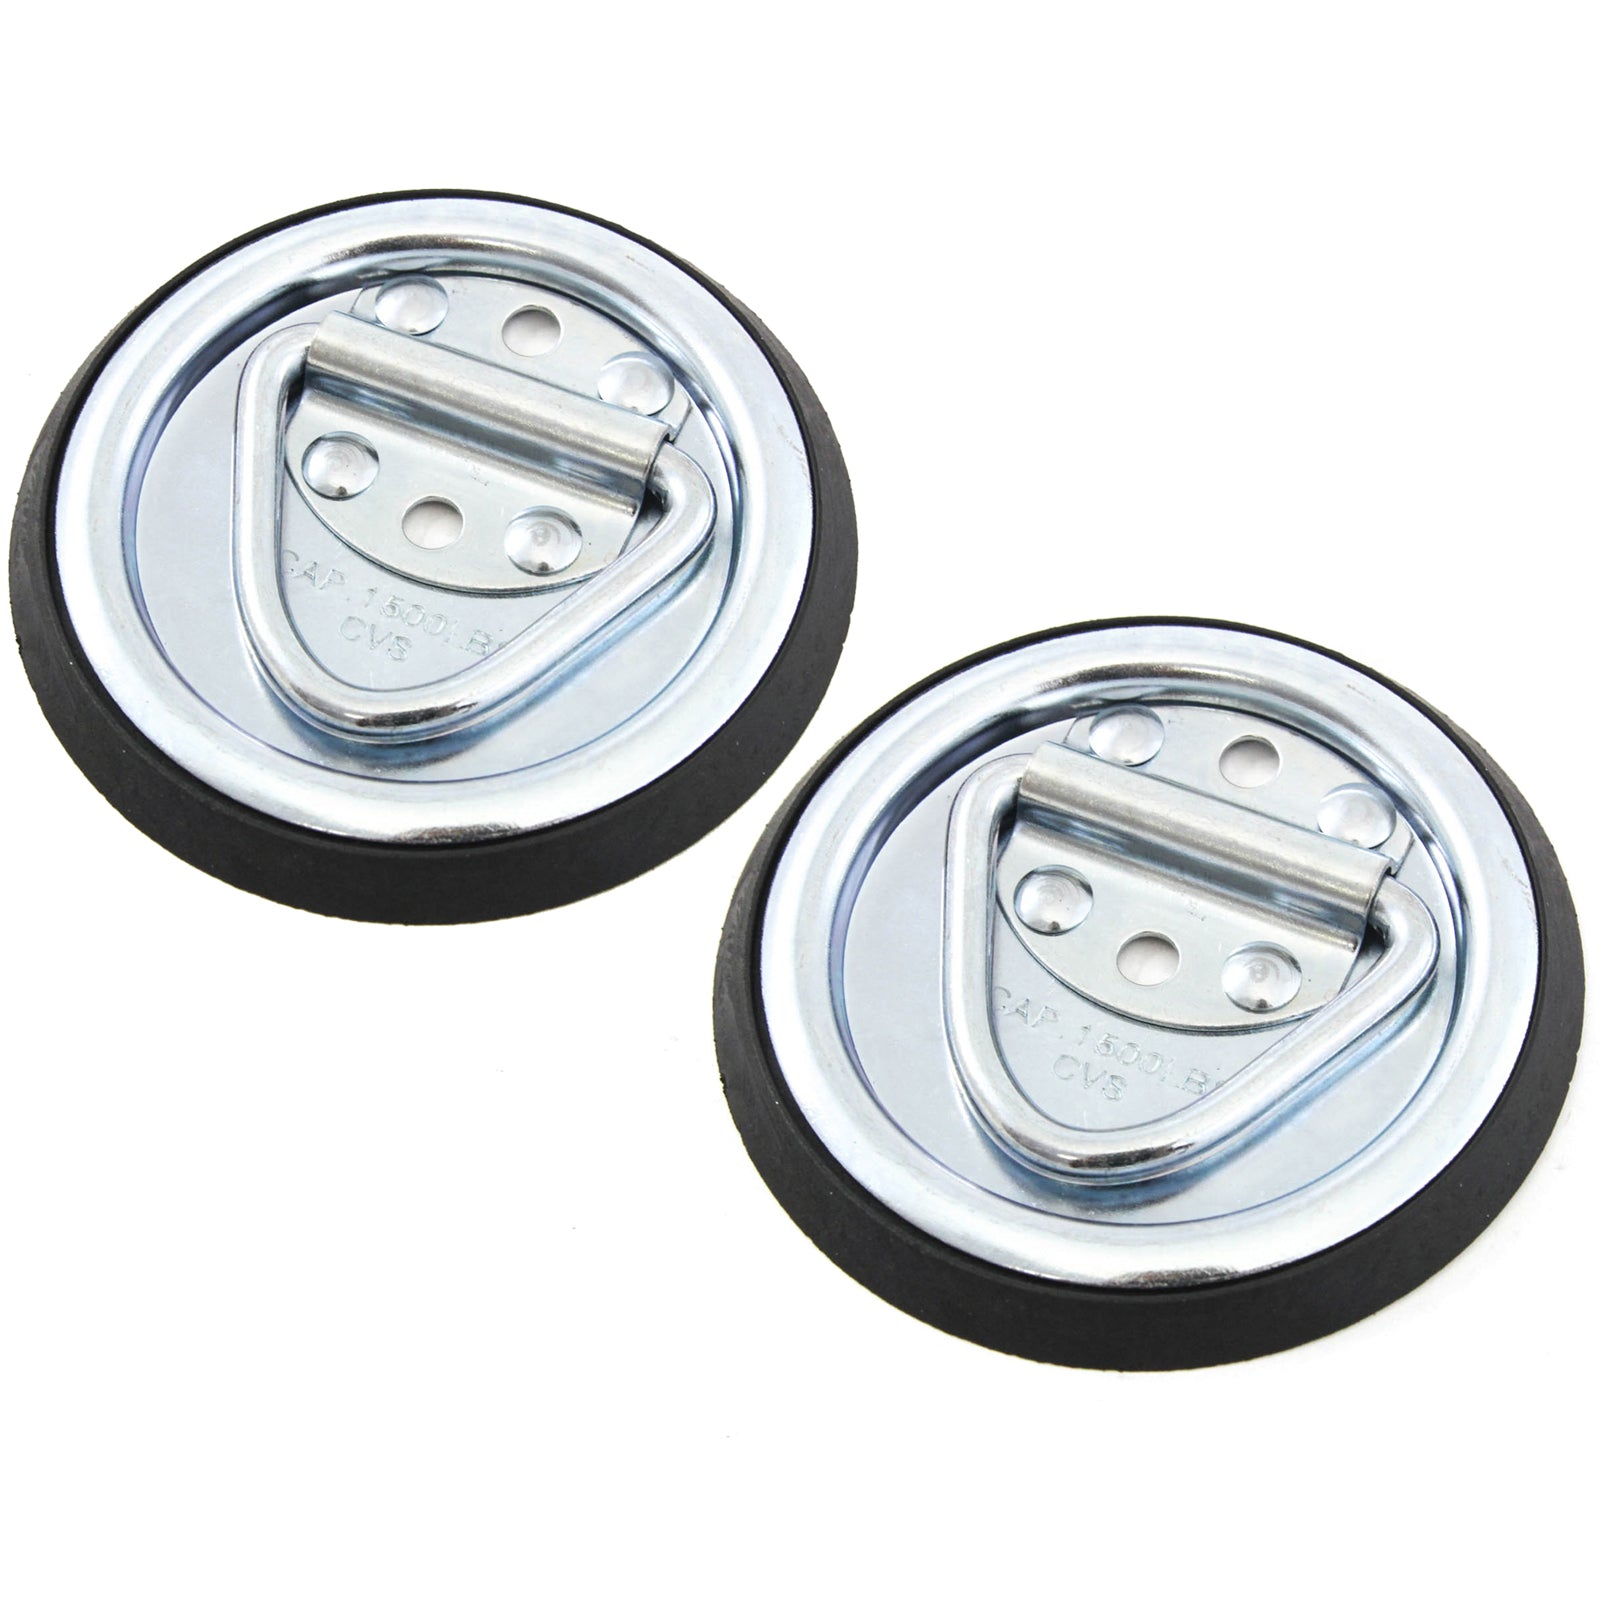 2 Surface Mount D Rope Ring 1/4 Inches Tie Down Truck Trailer Cargo Van Point 4 Inches Round